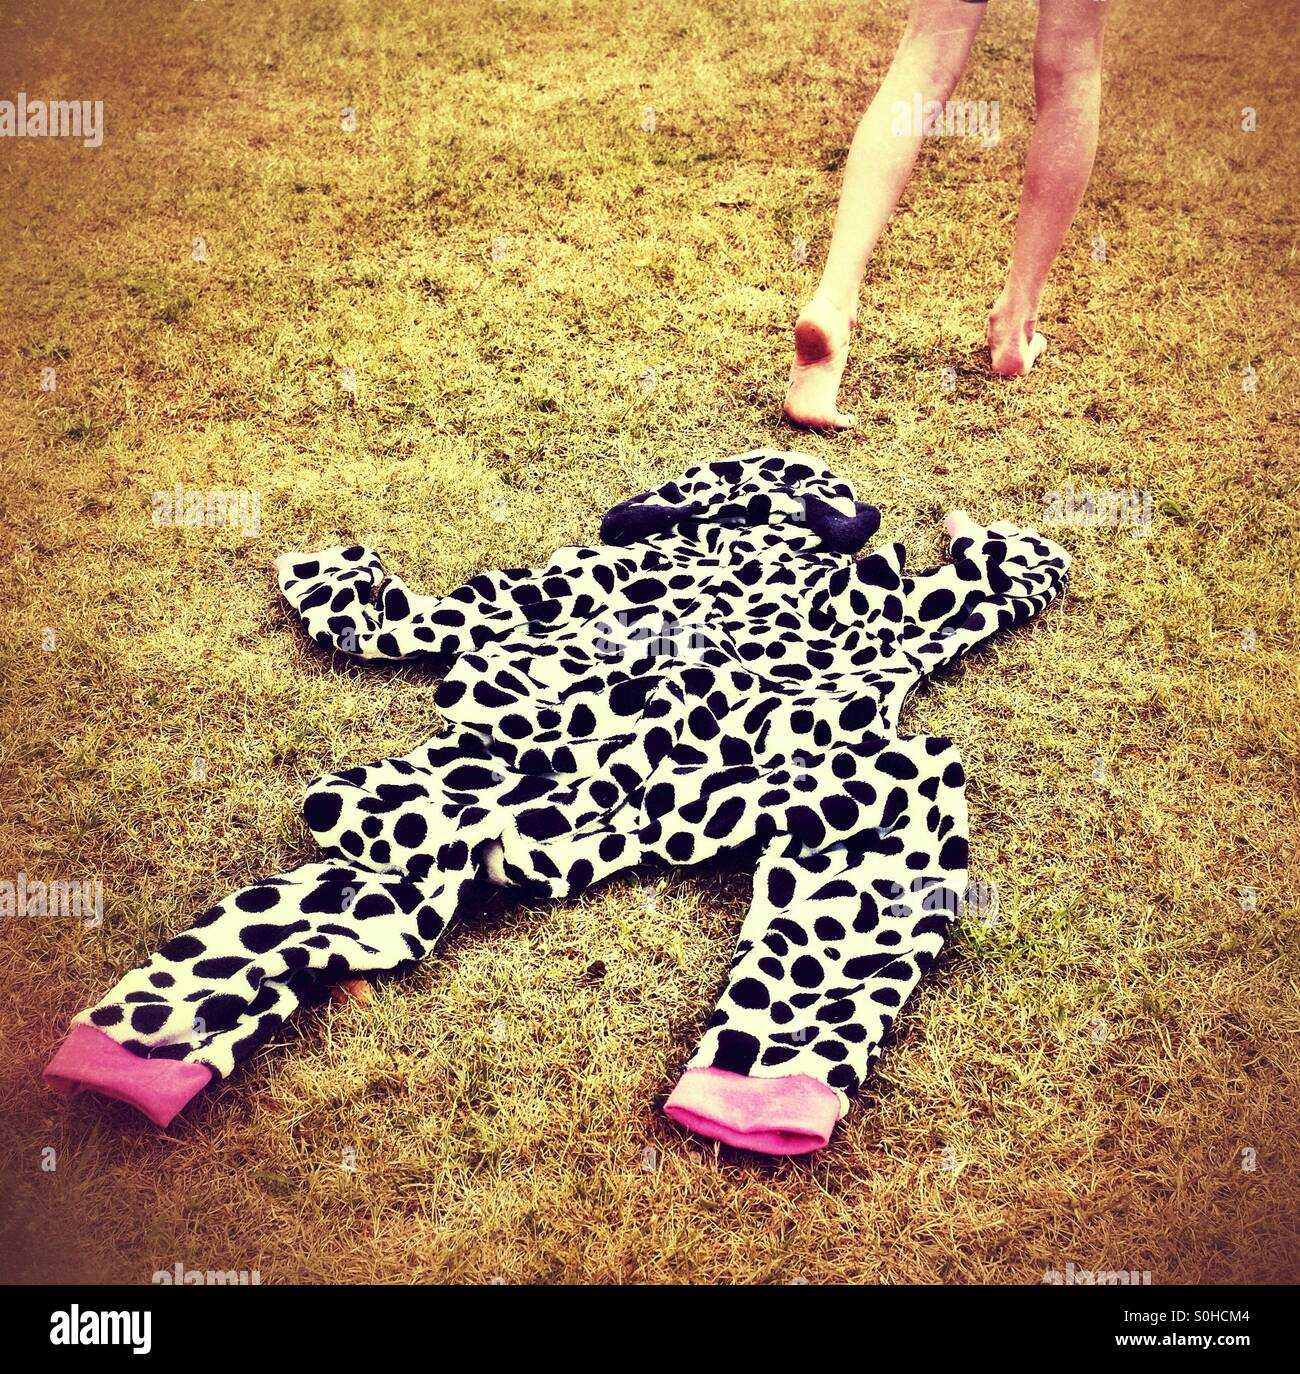 Escaping from a onesie ! - Stock Image